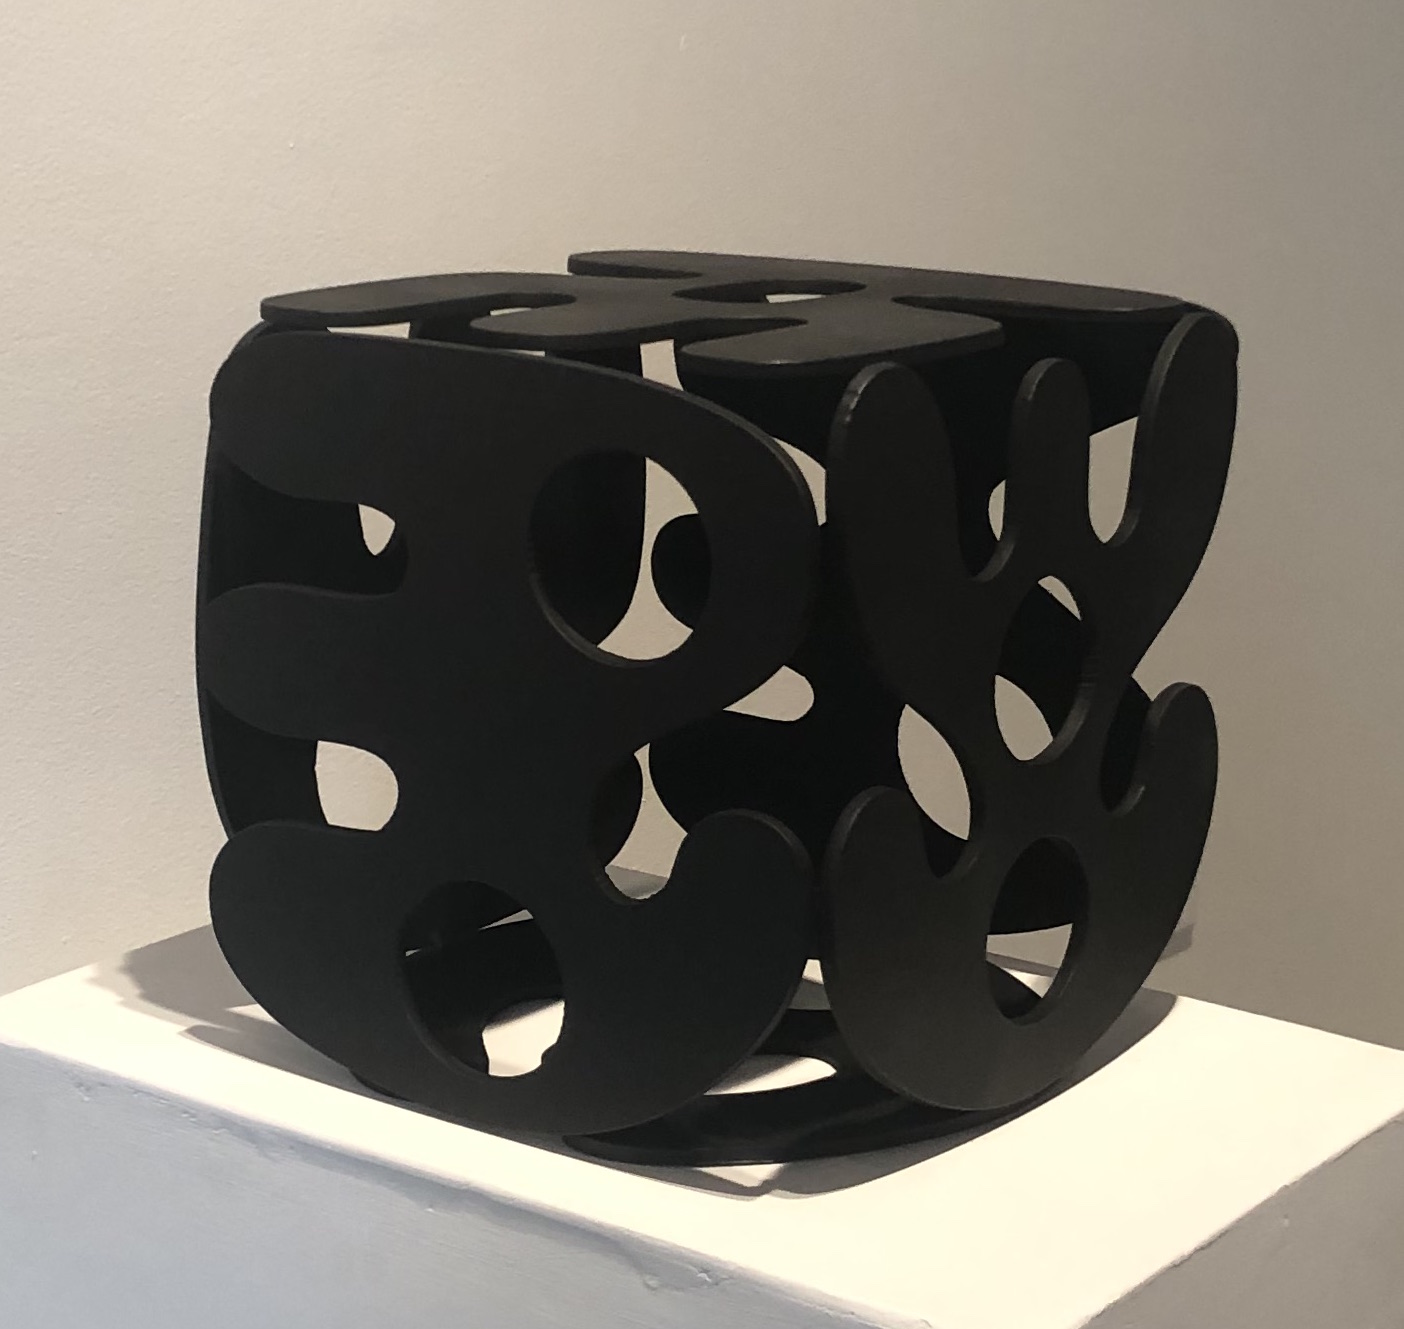 Cubed Alphabet (Black)  , 2019  Paint on steel  12H x 12W x 12D inches